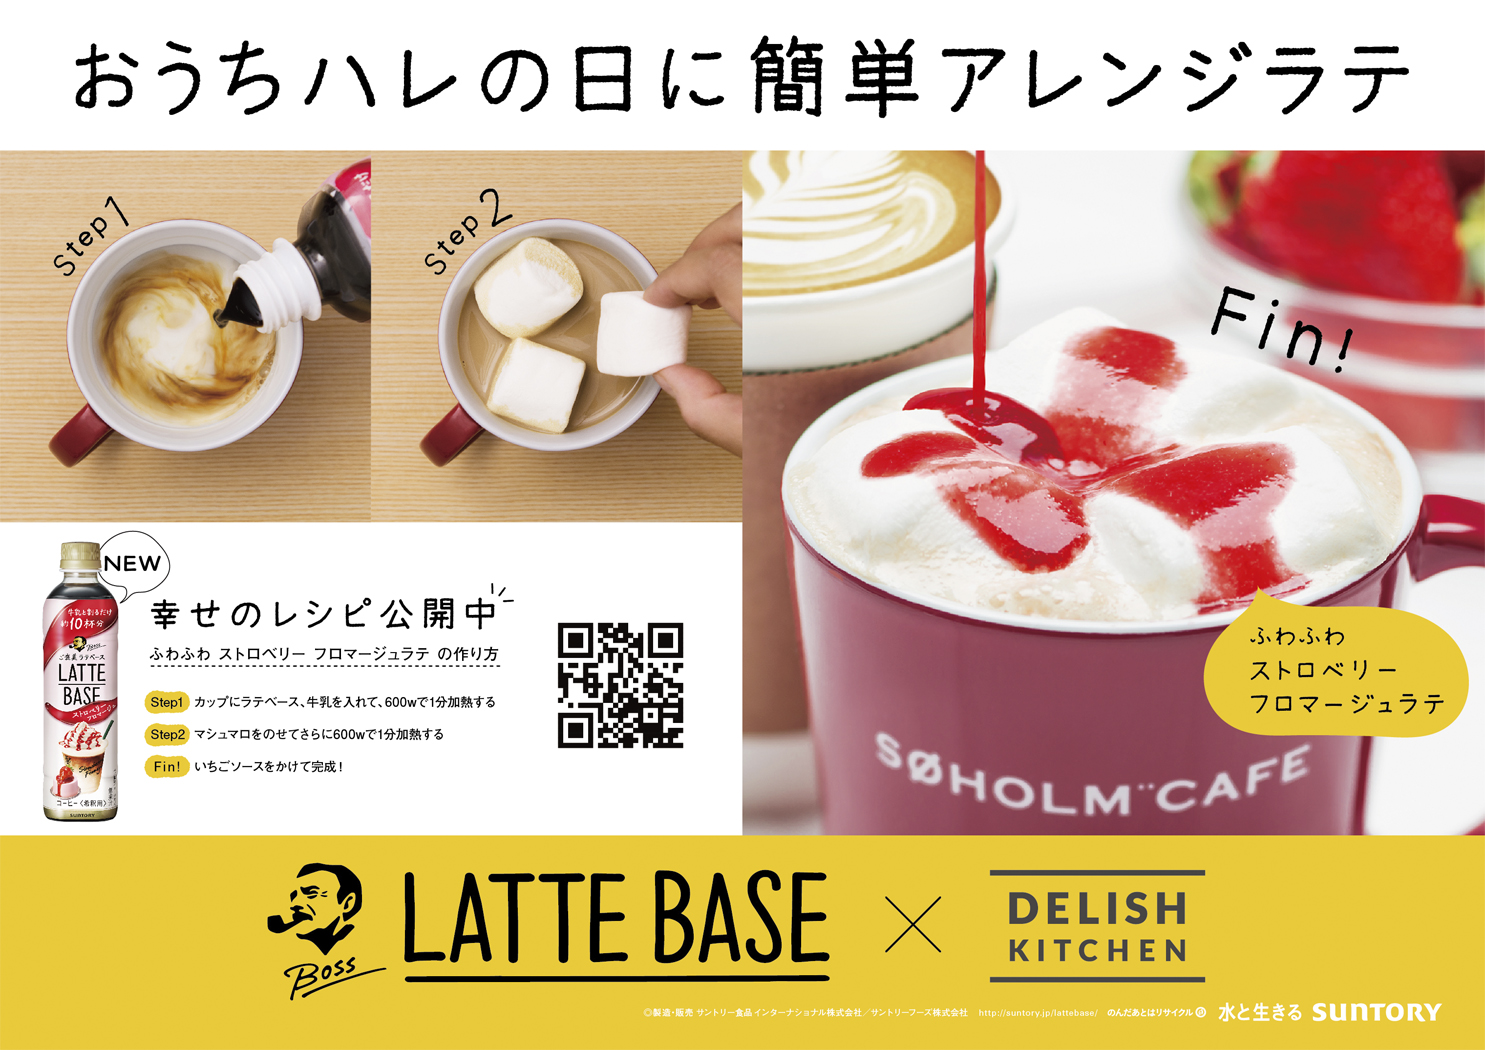 Suntory boss LatteBase × DELISH KITCHEN  B3board